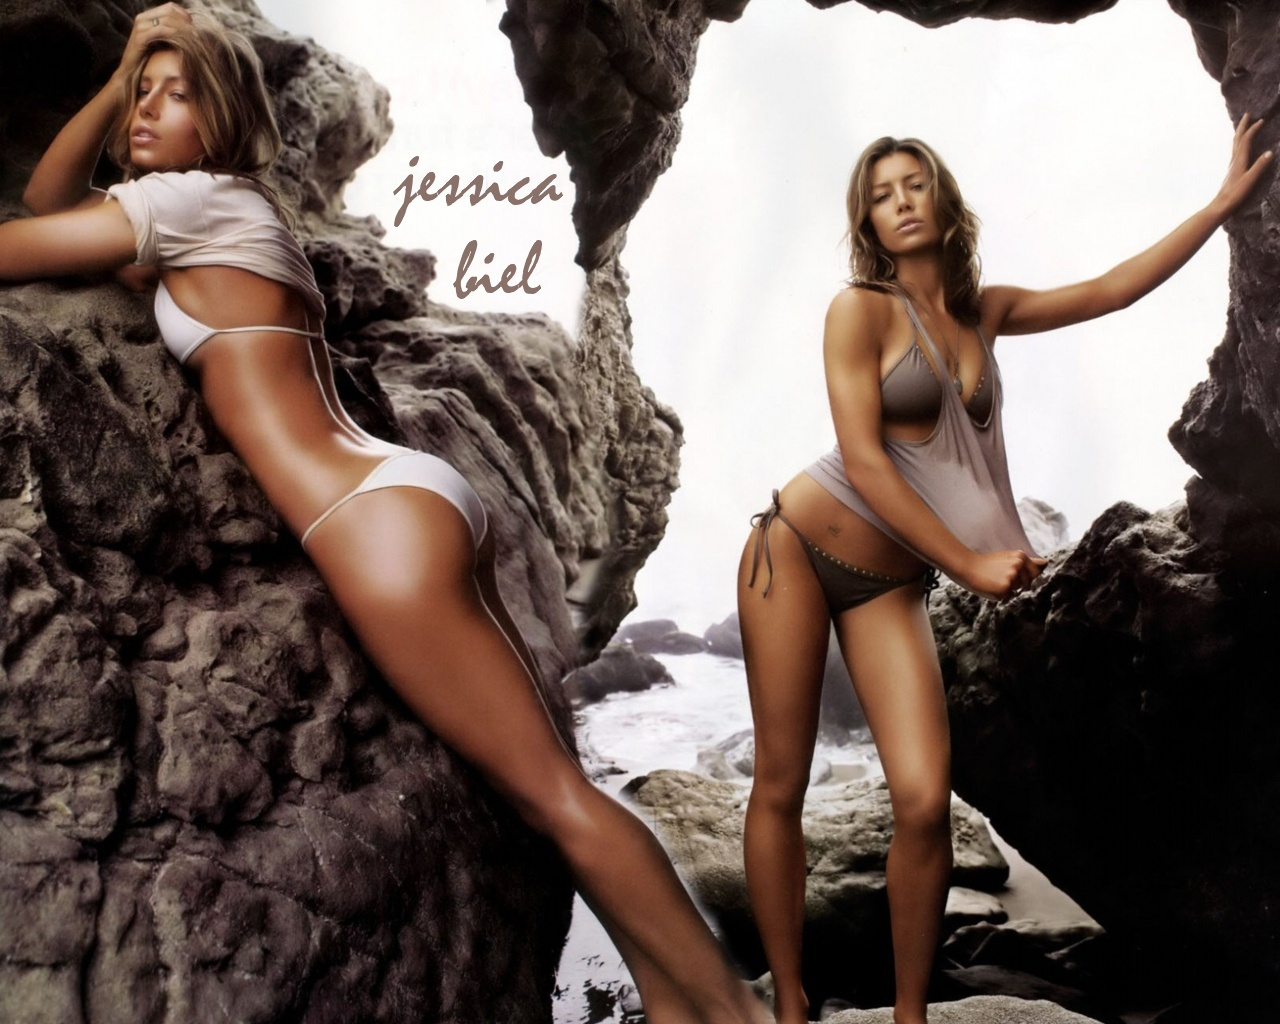 Sexy wallpappers of jessica biel